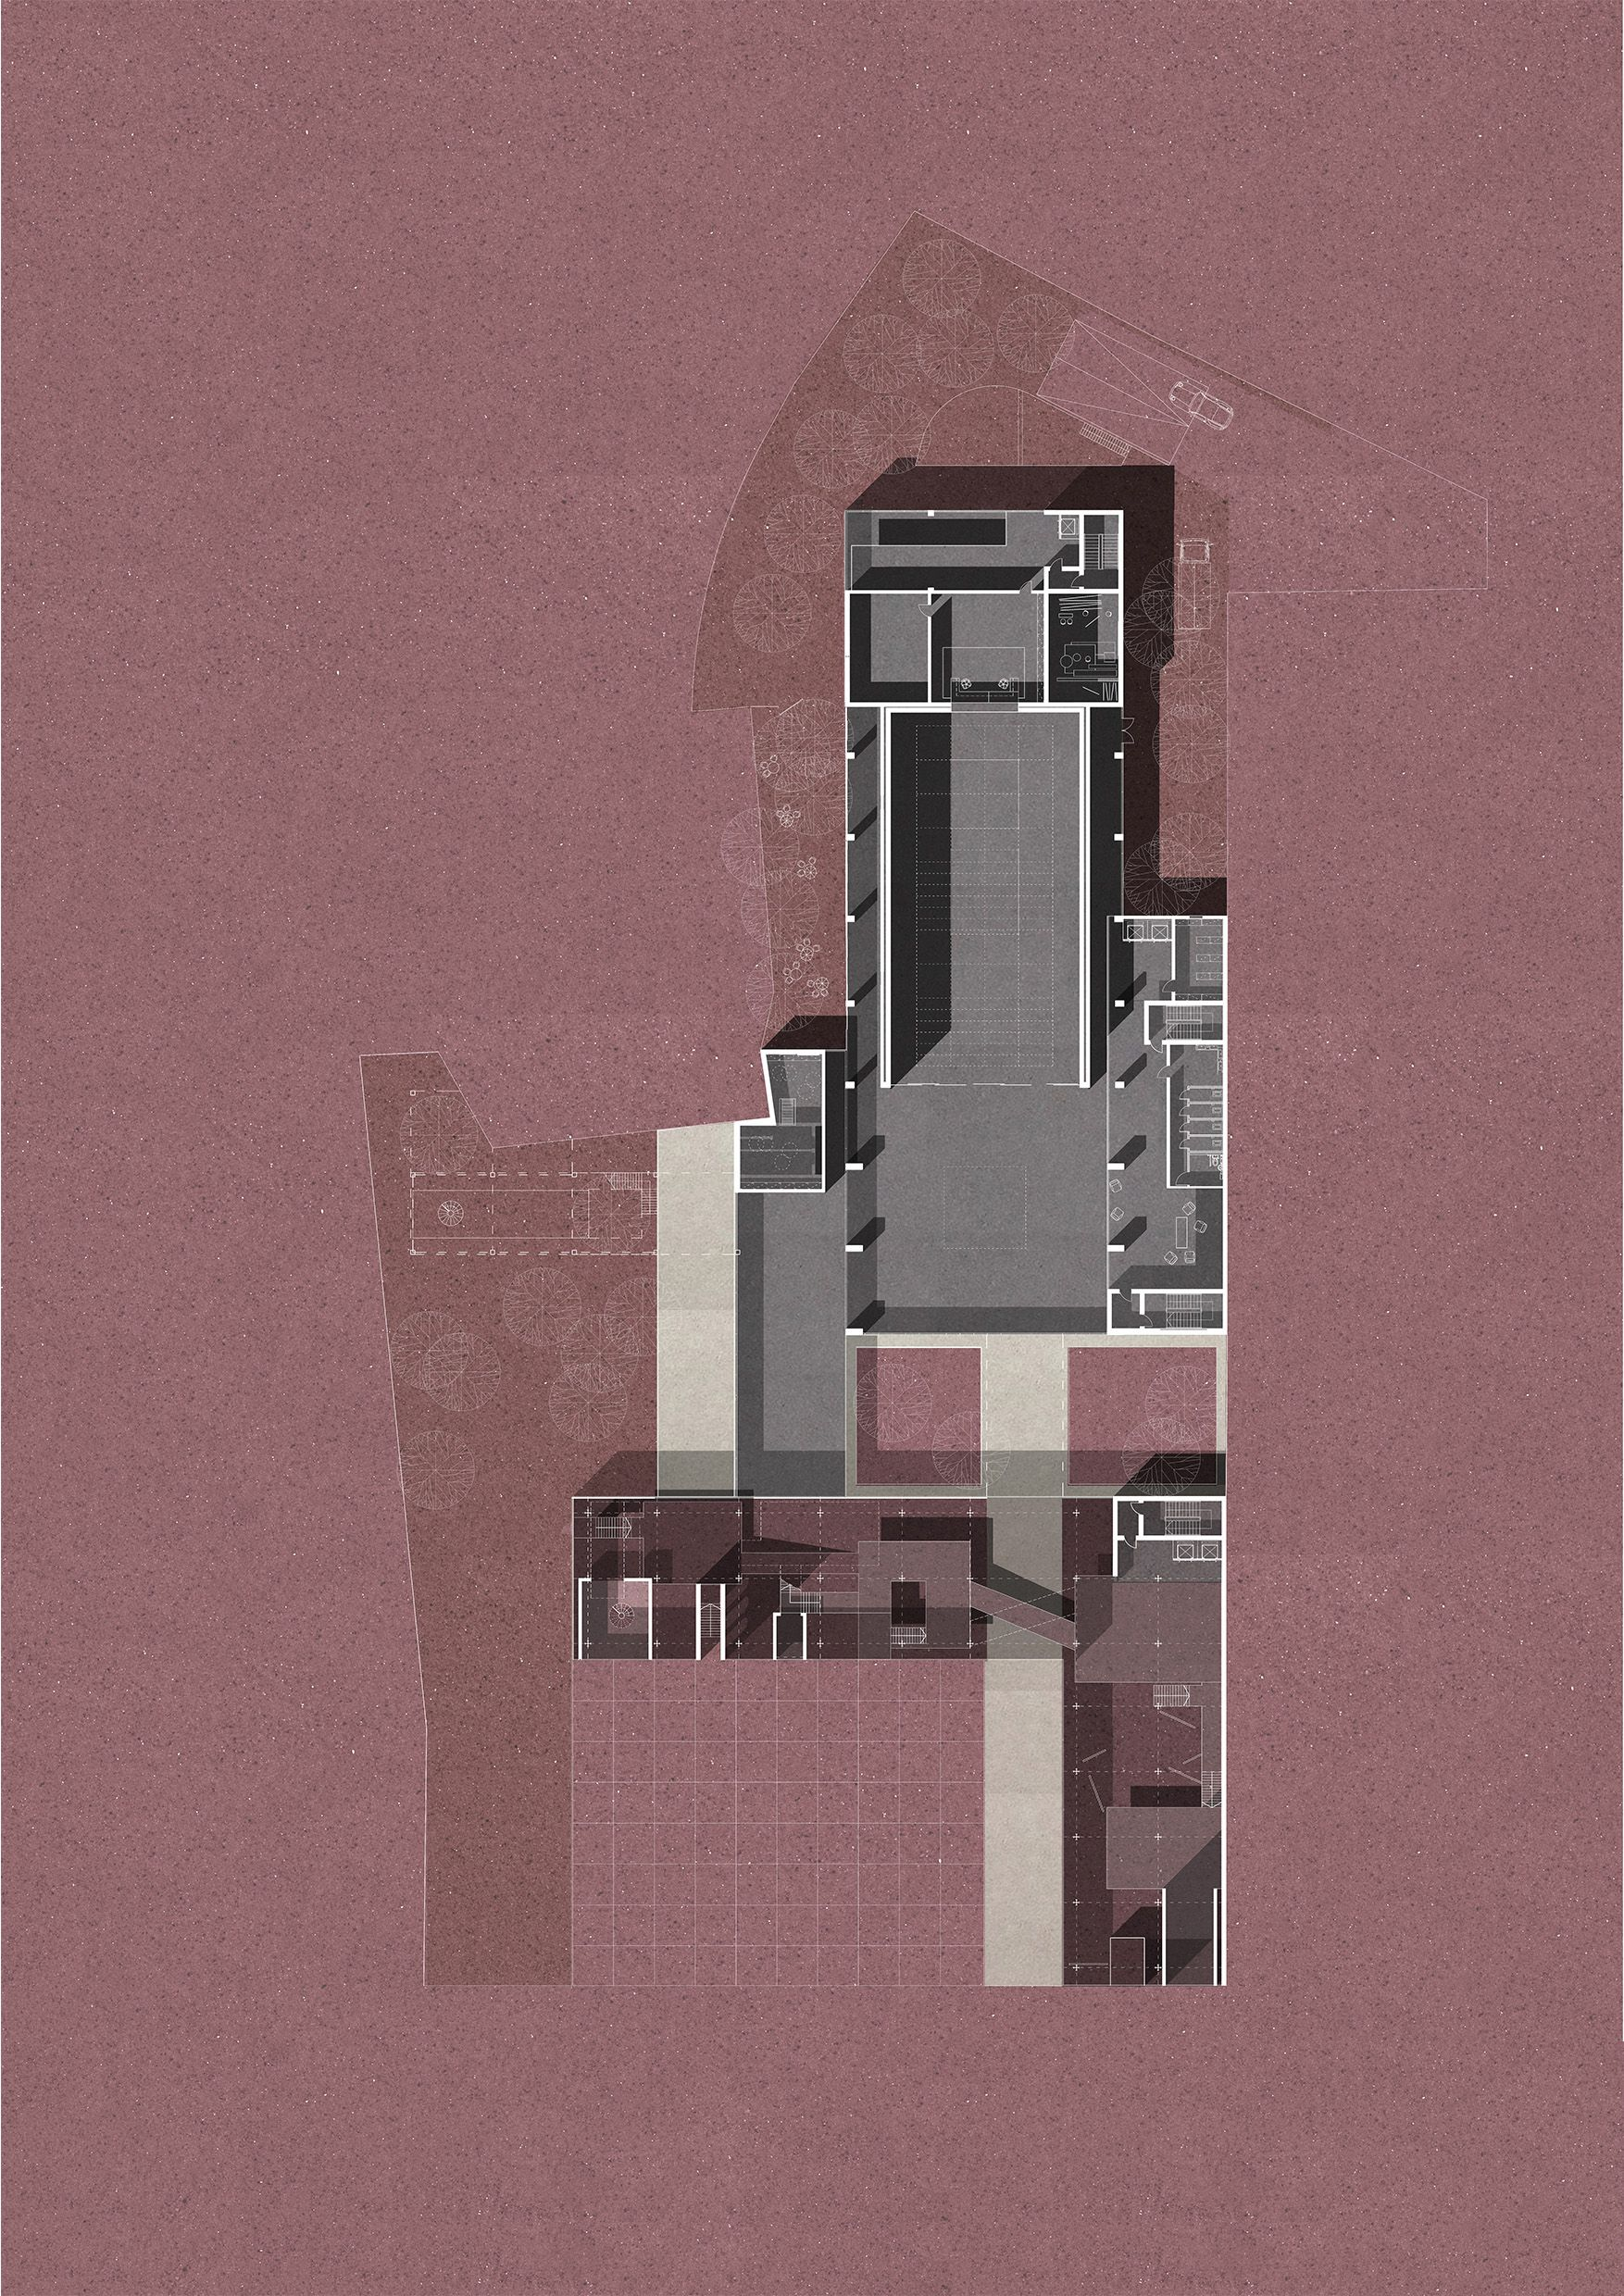 Architectural Project Render Multifunctional Art Cente on Behance